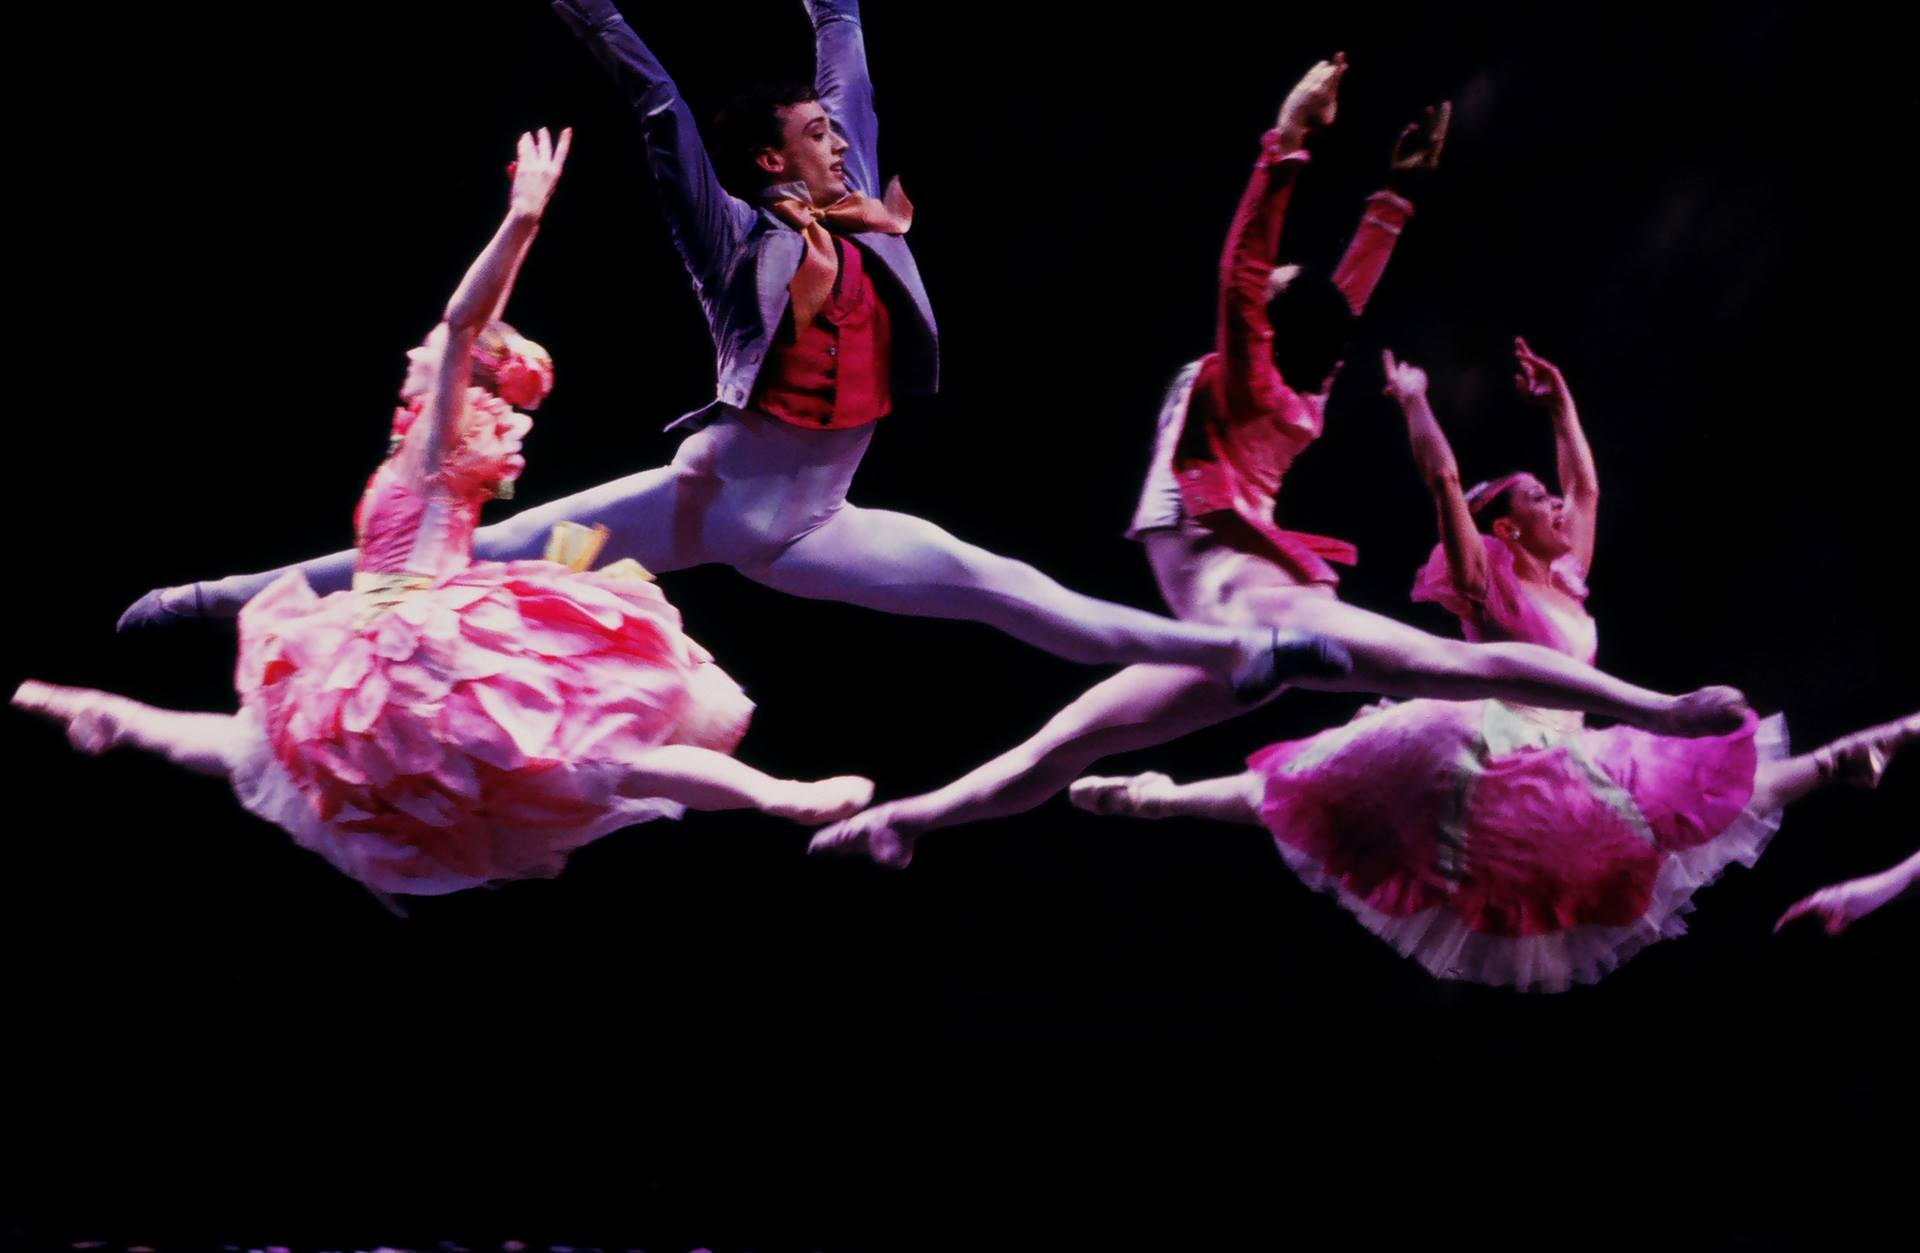 Beneath The Beautiful Ballet A Brutal Toll On The Body For The Win